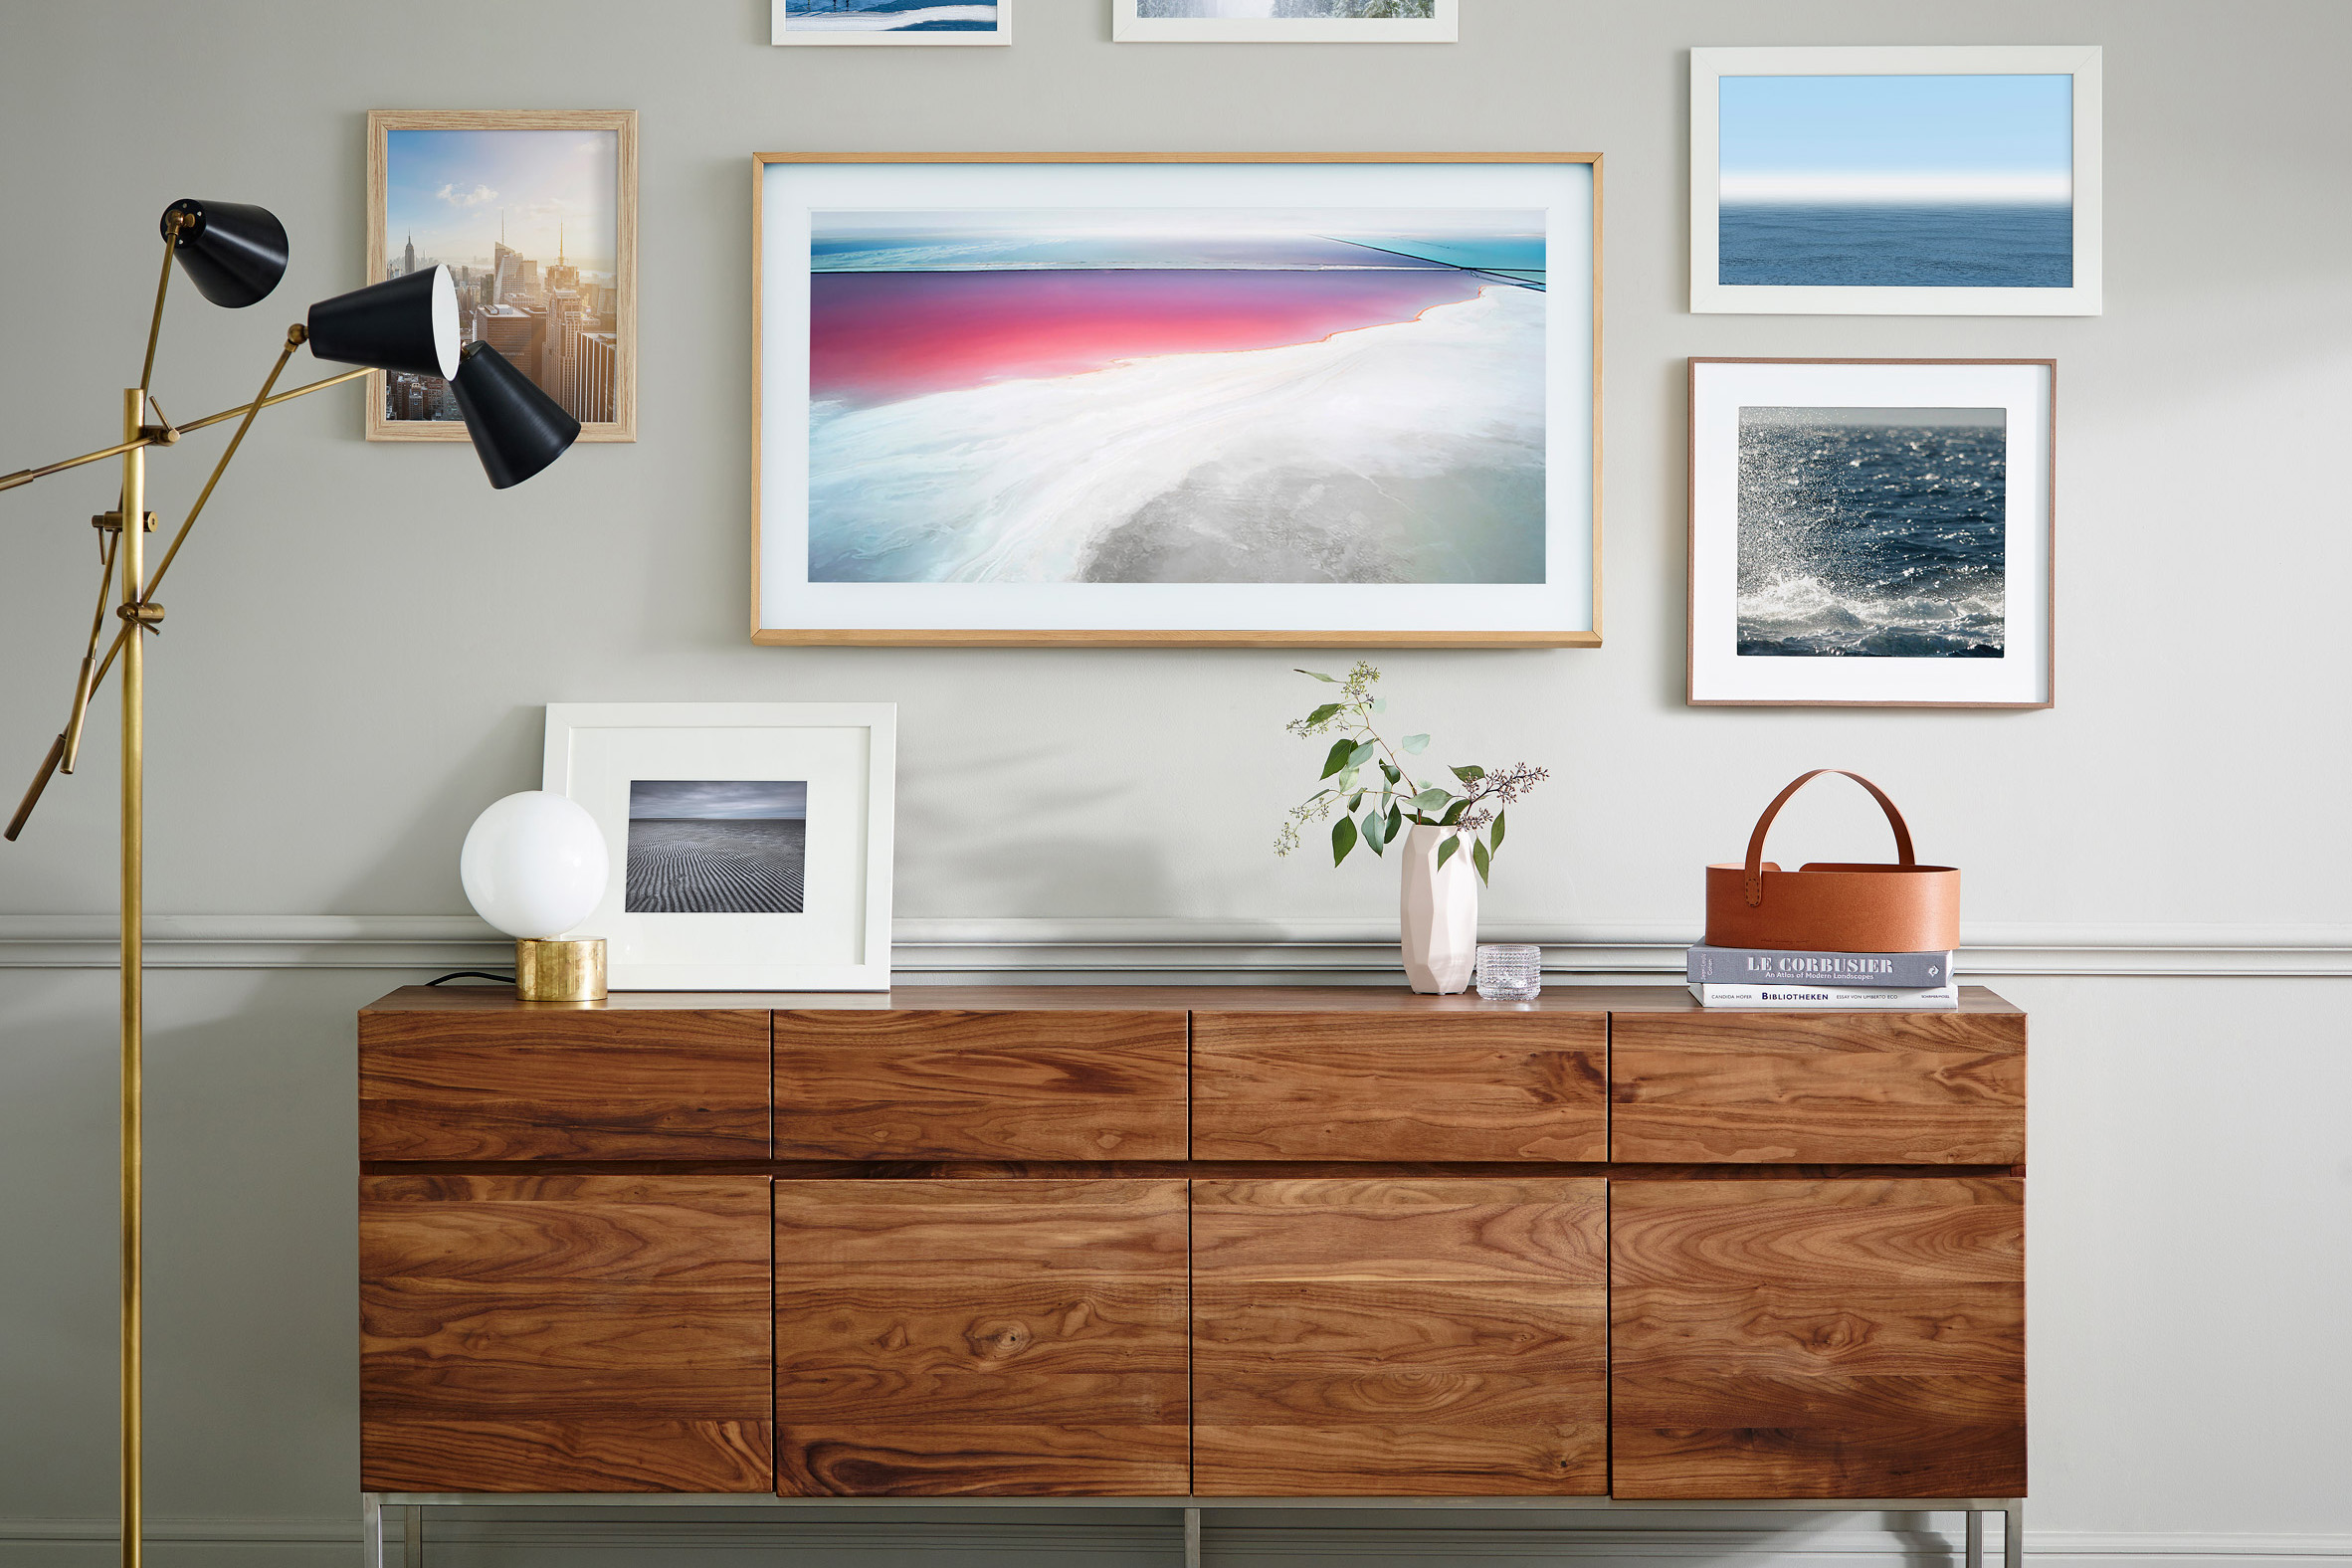 samsung-tvy-yves-behar-design-technology-television-products_dezeen_2364_col_4.jpg